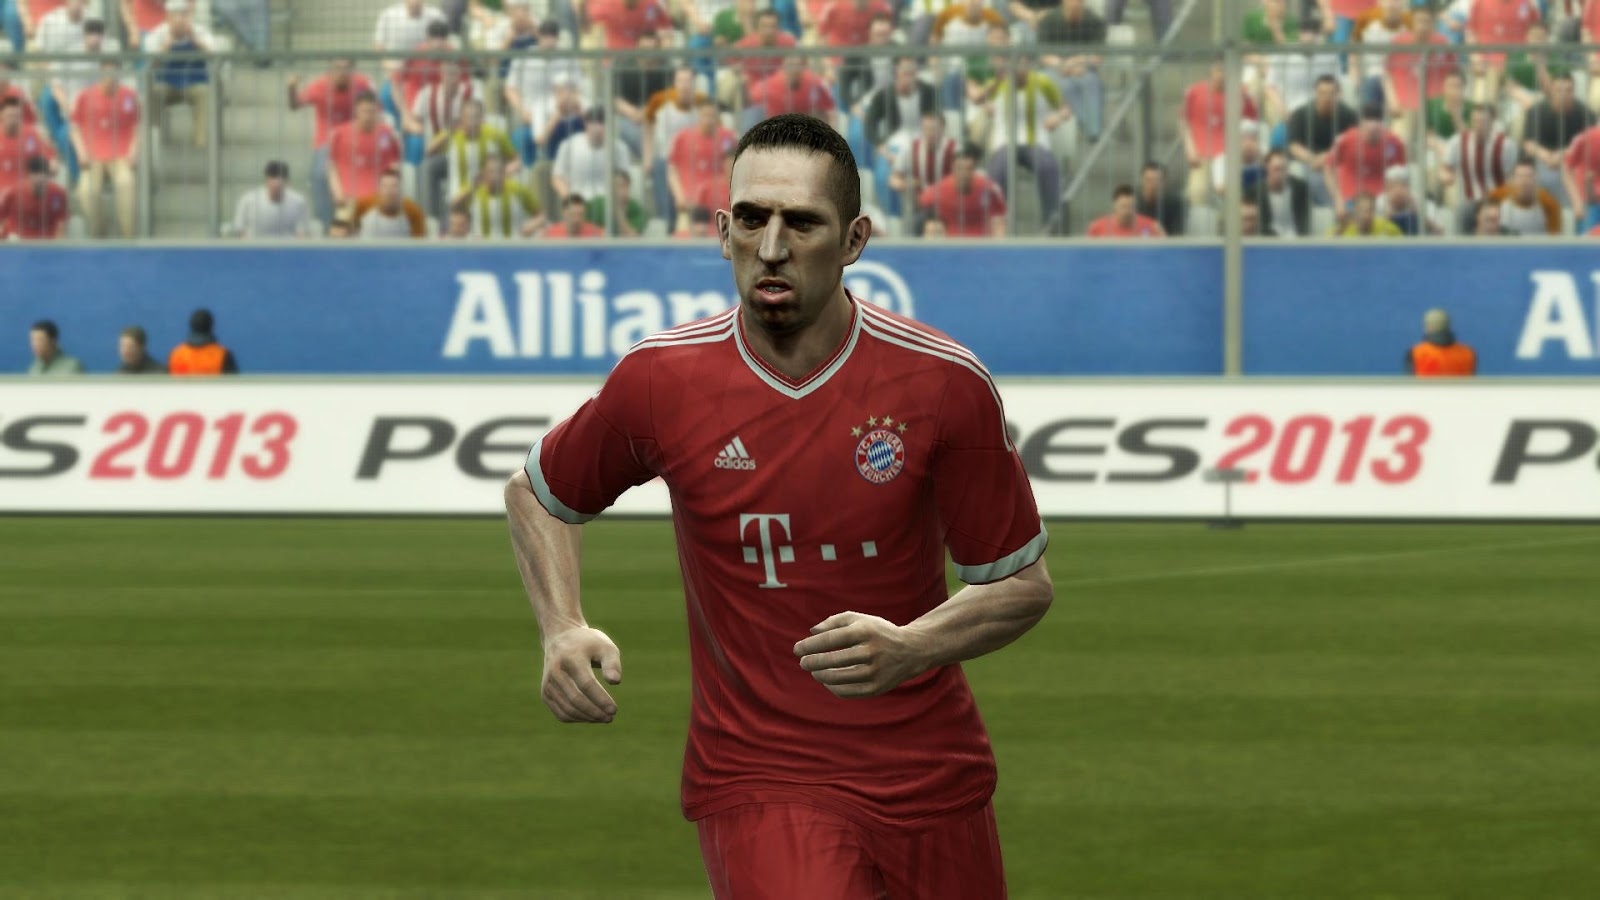 PES 2013: Kit Home Bayern de Munique 2013-14